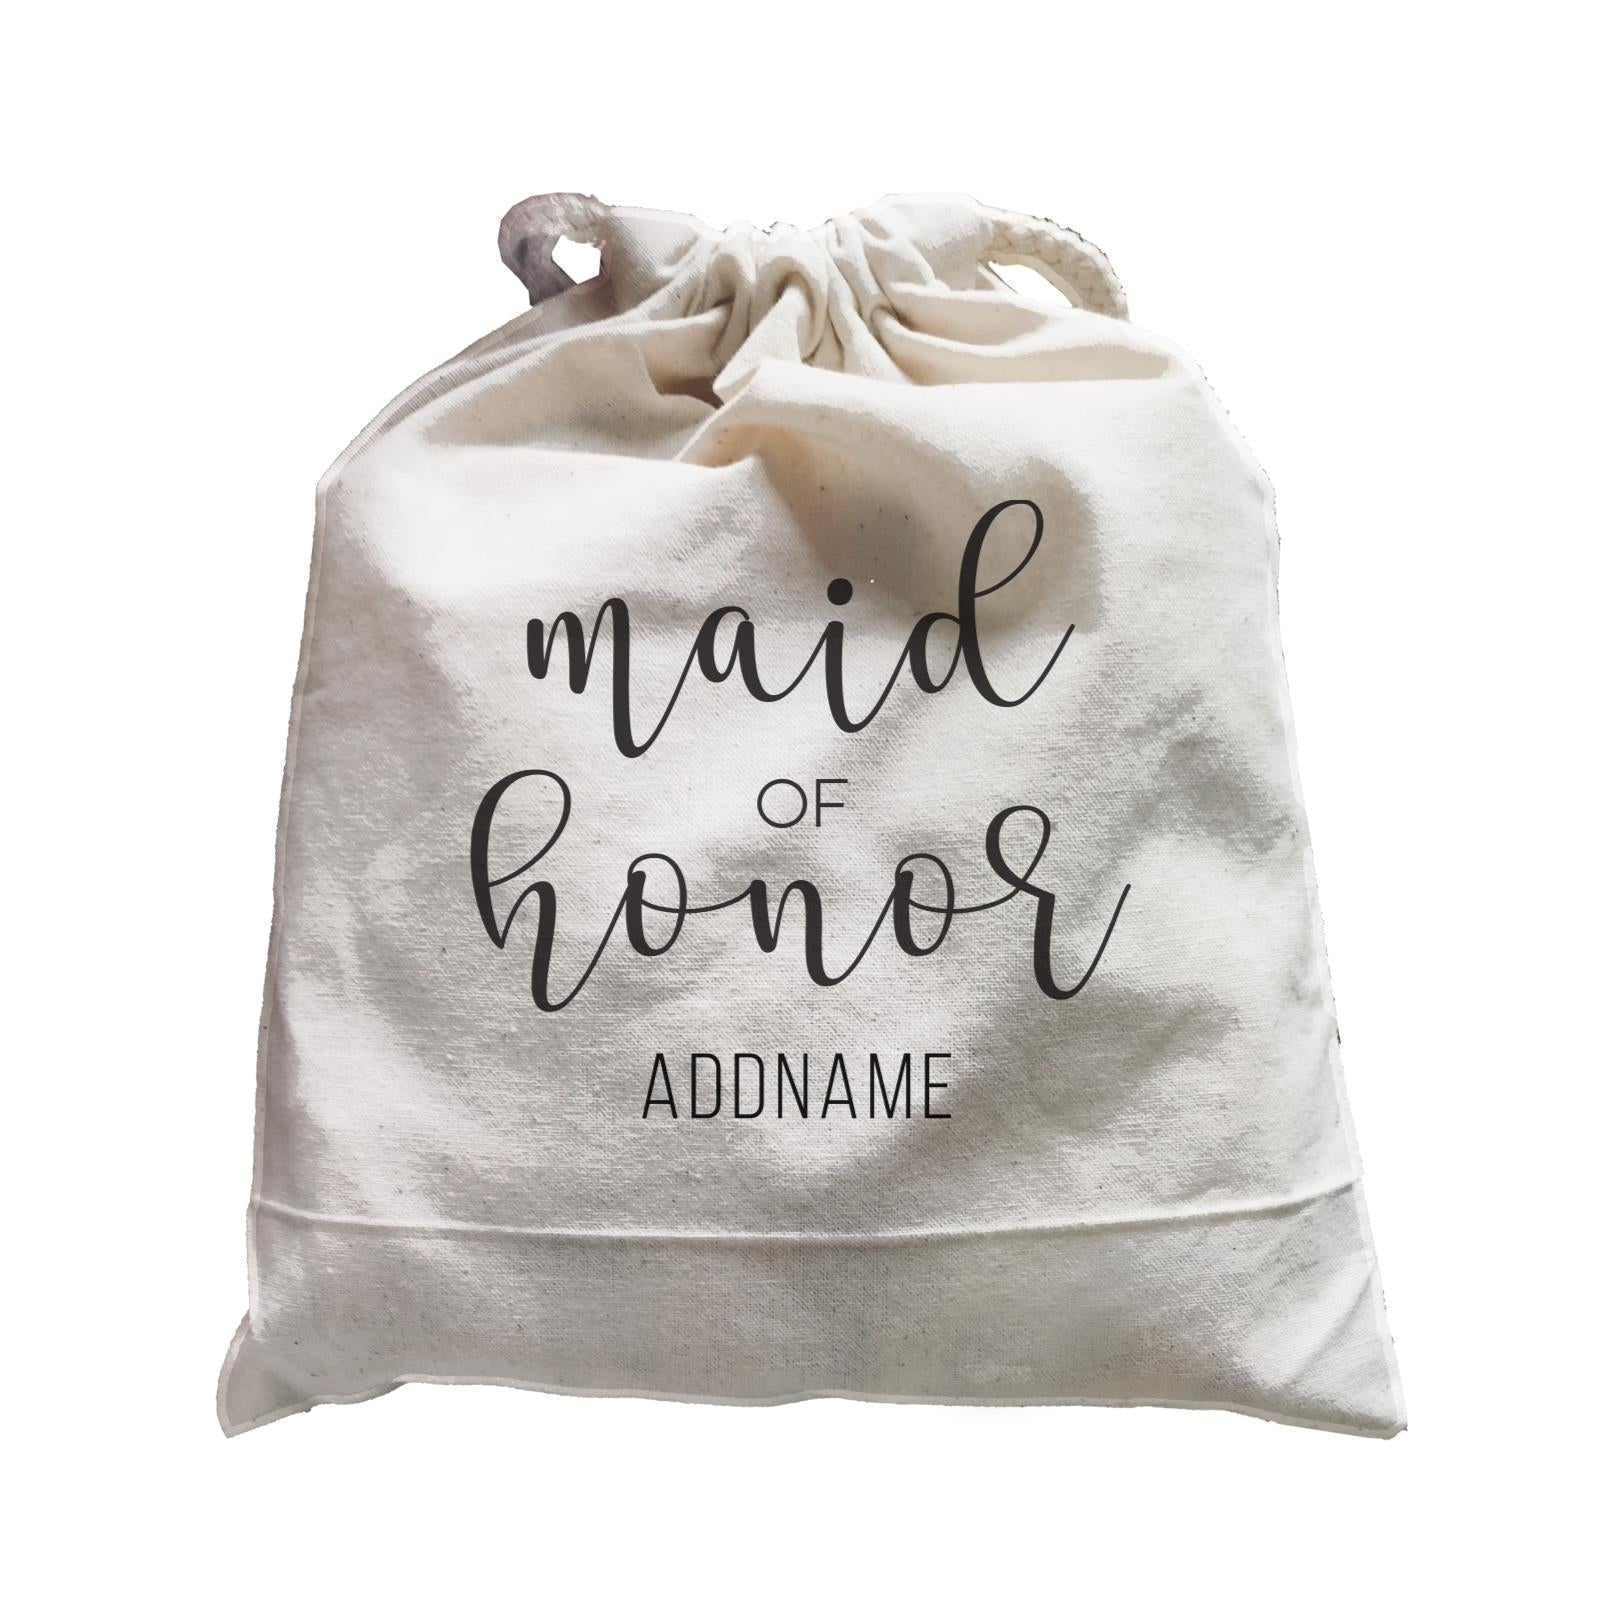 Bridesmaid Calligraphy Maid Of Honour Subtle Addname Satchel